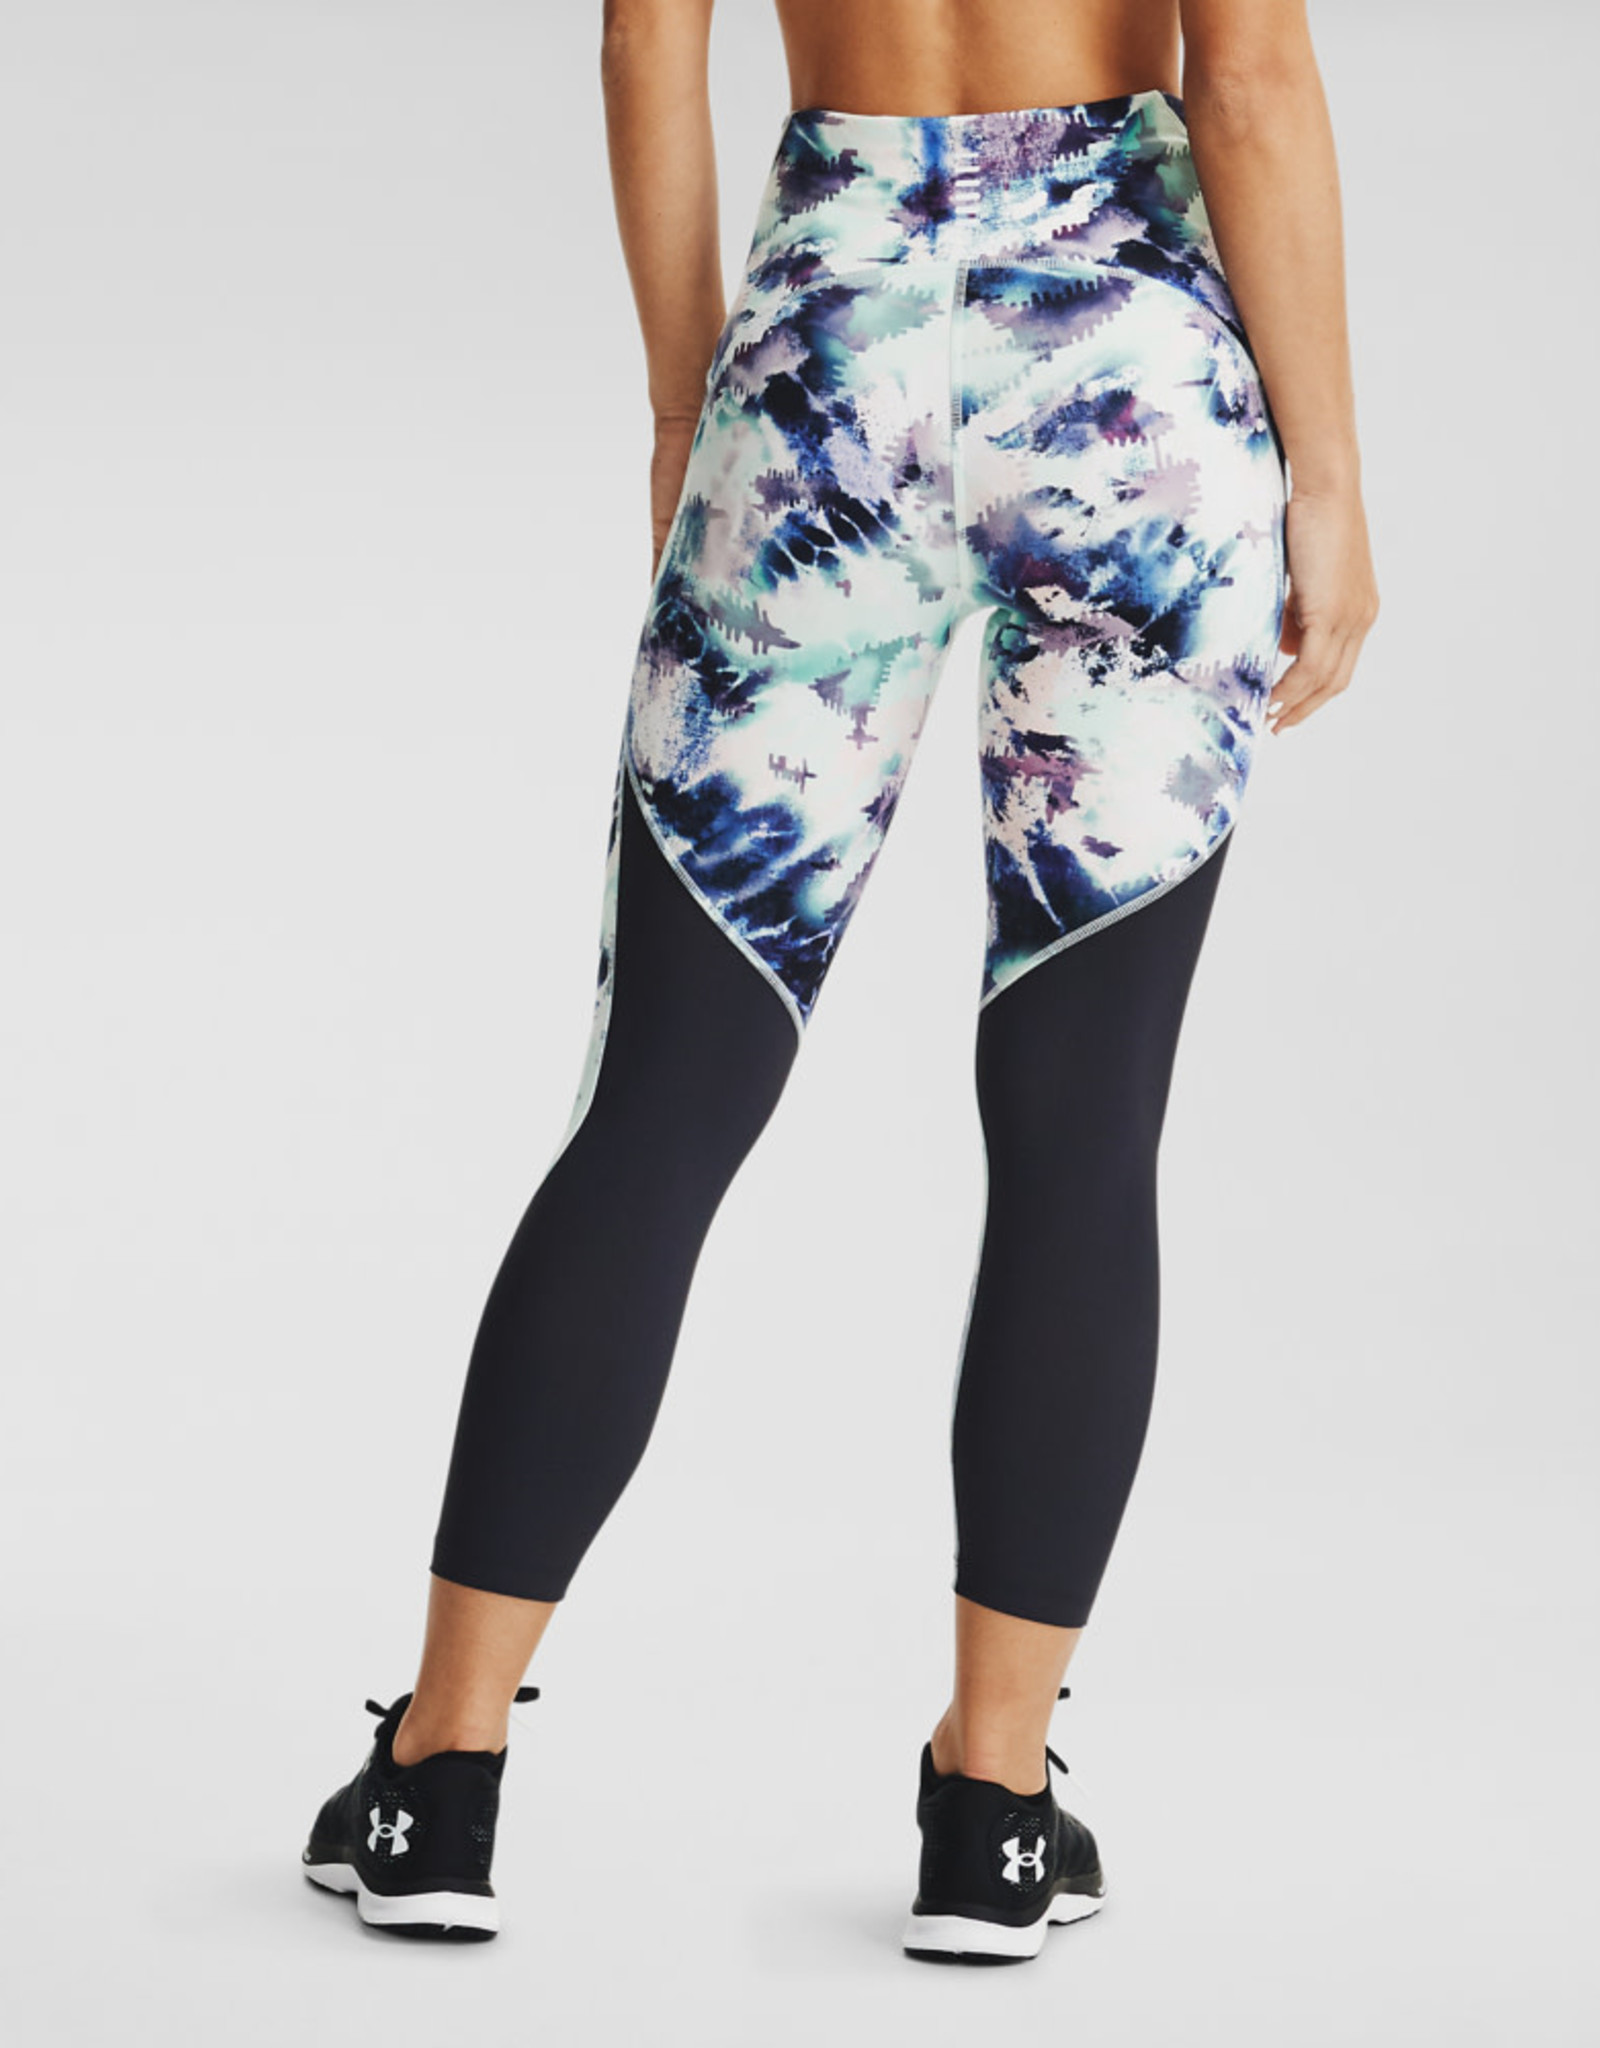 Under Armour UA Fly Fast HG Printed Crop - Seaglass Blue-Blackout Purple-Reflective